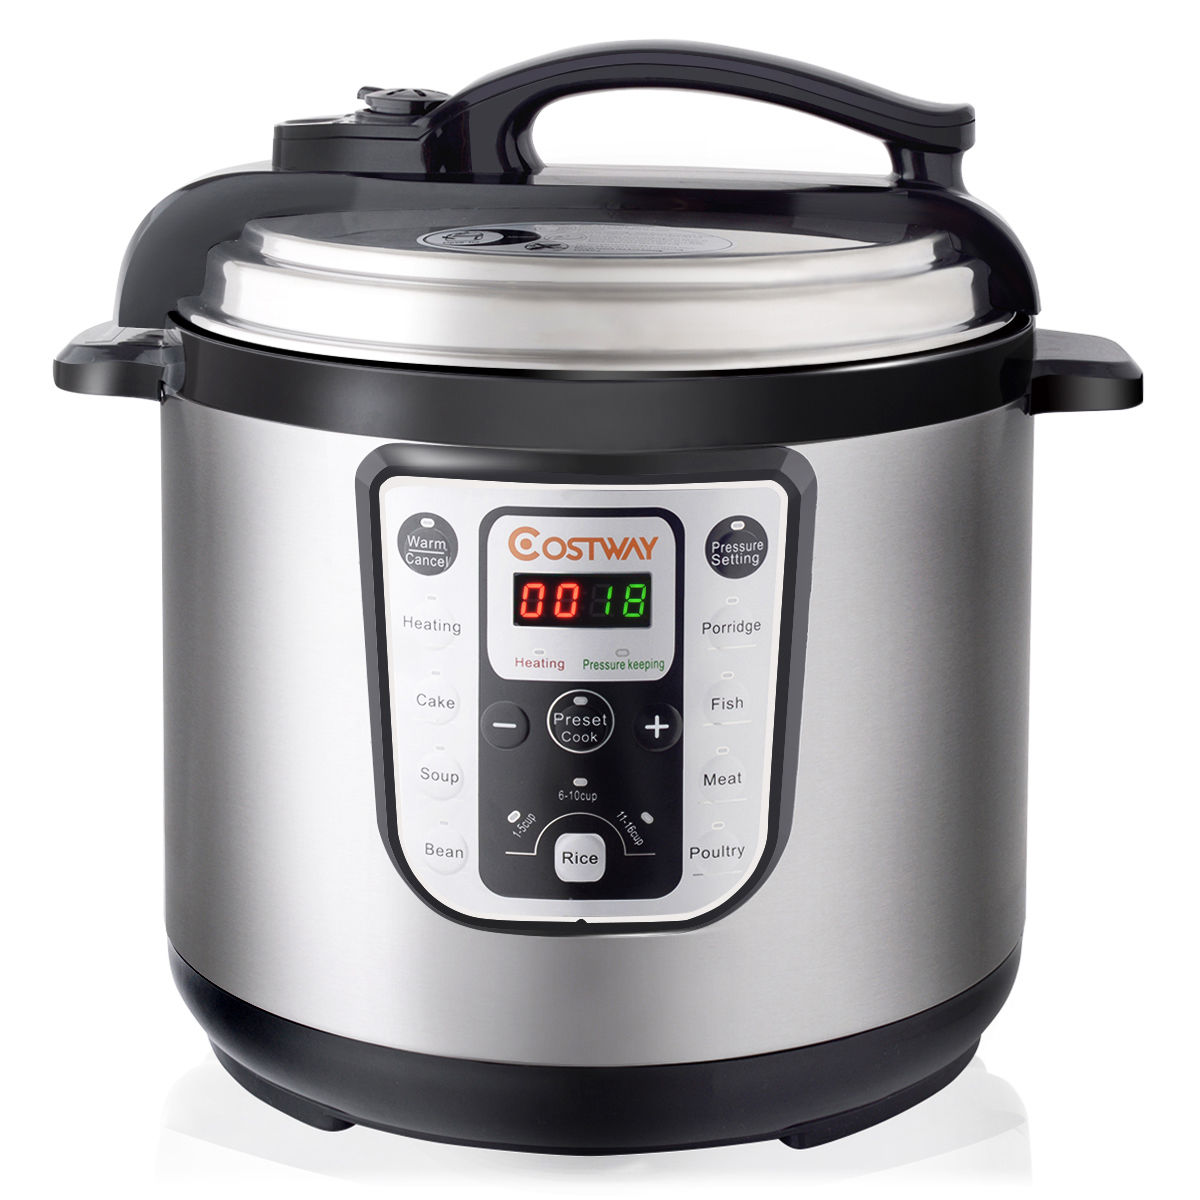 Costway 1250W 8 Quart Electric Pressure Cooker Programmable Multi-Use Stainless Steel